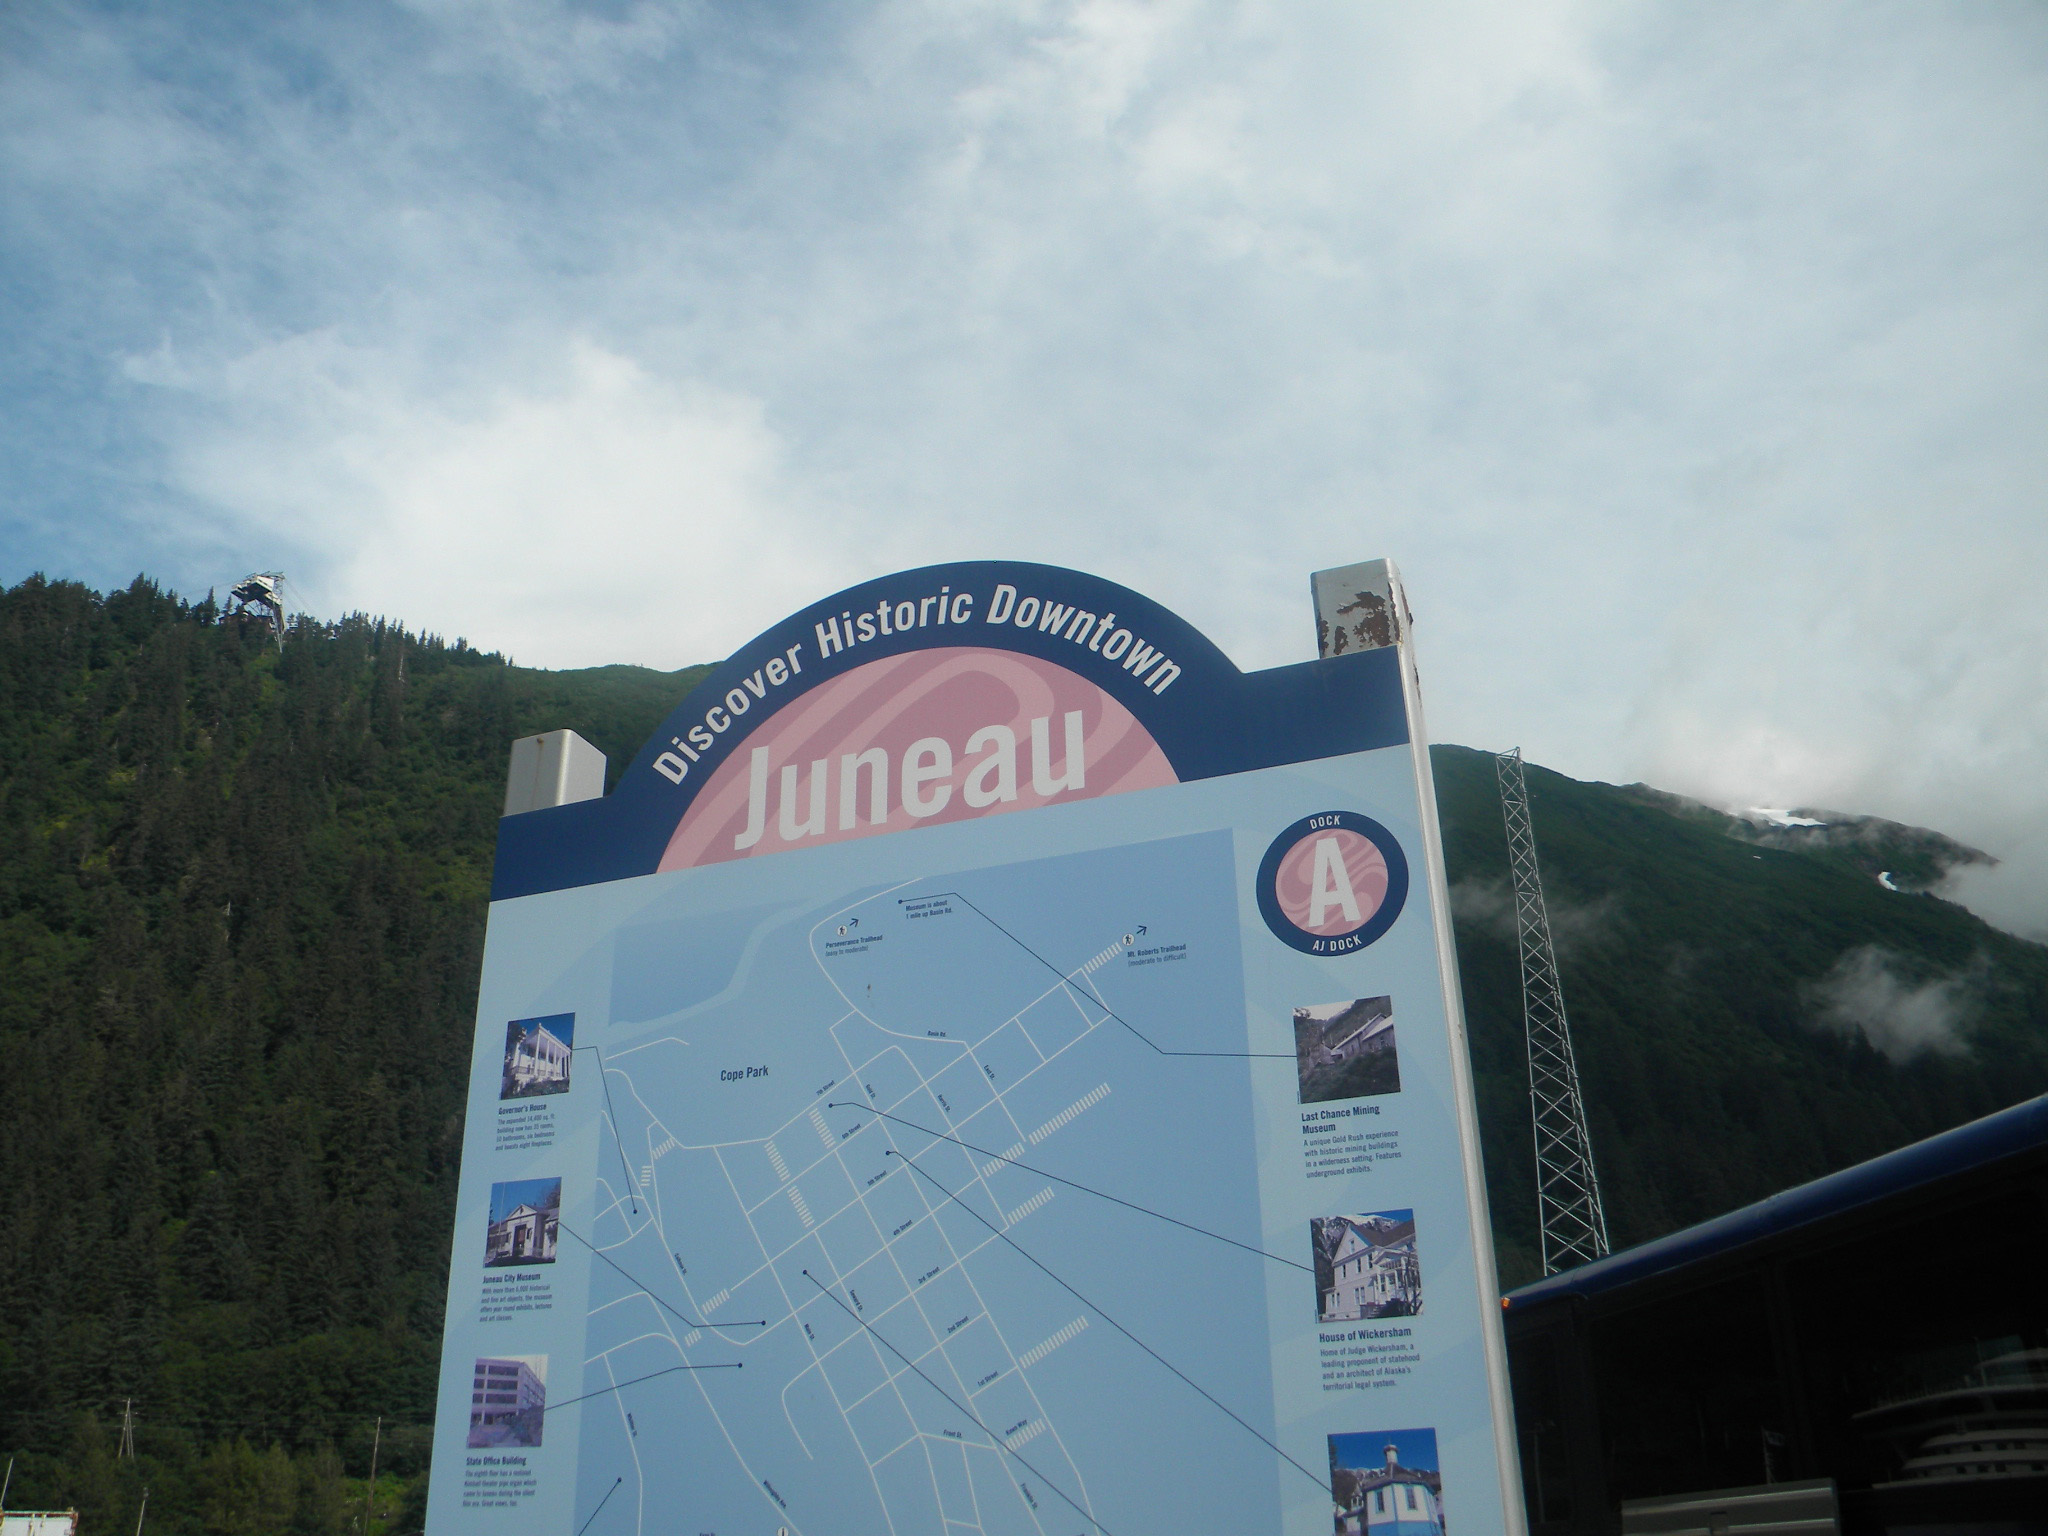 Juneau, capital city of Alaska, summer 2012